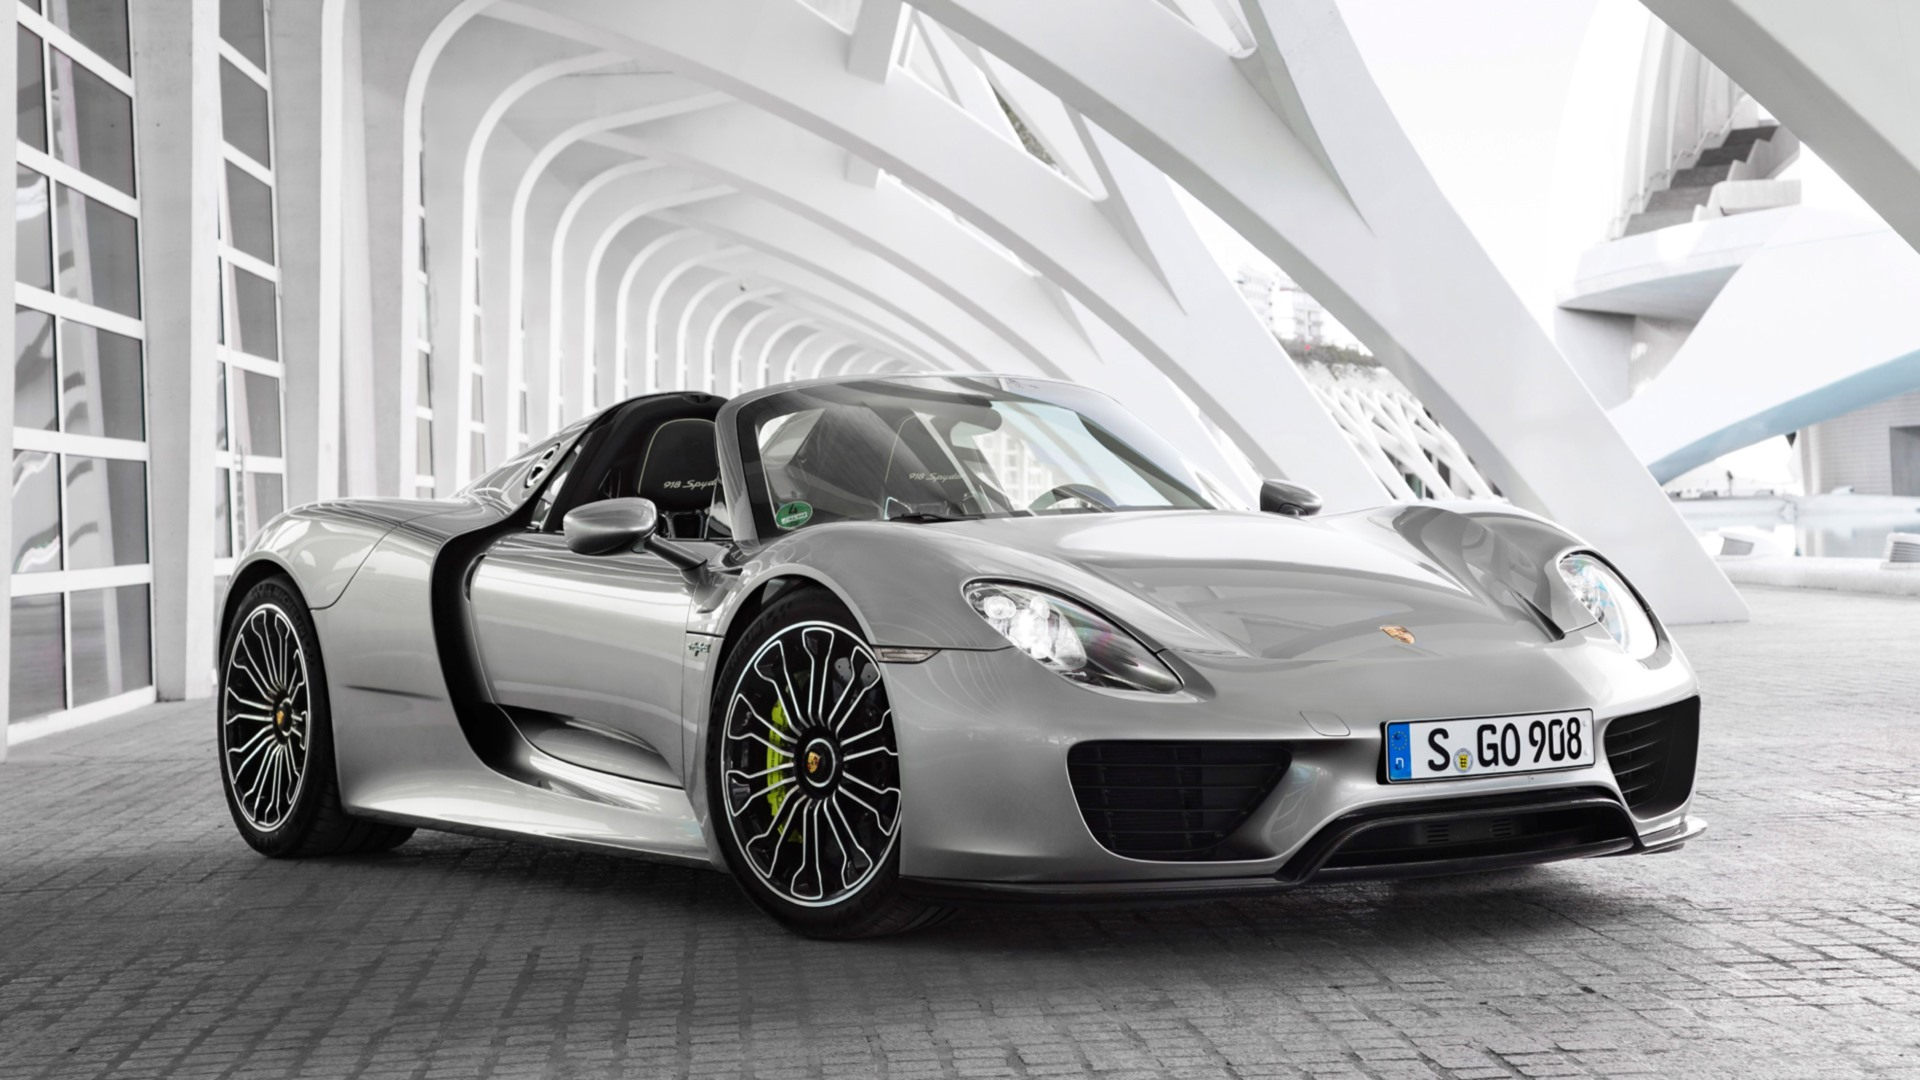 Porsche 918 Spyder Wallpapers Pictures Images